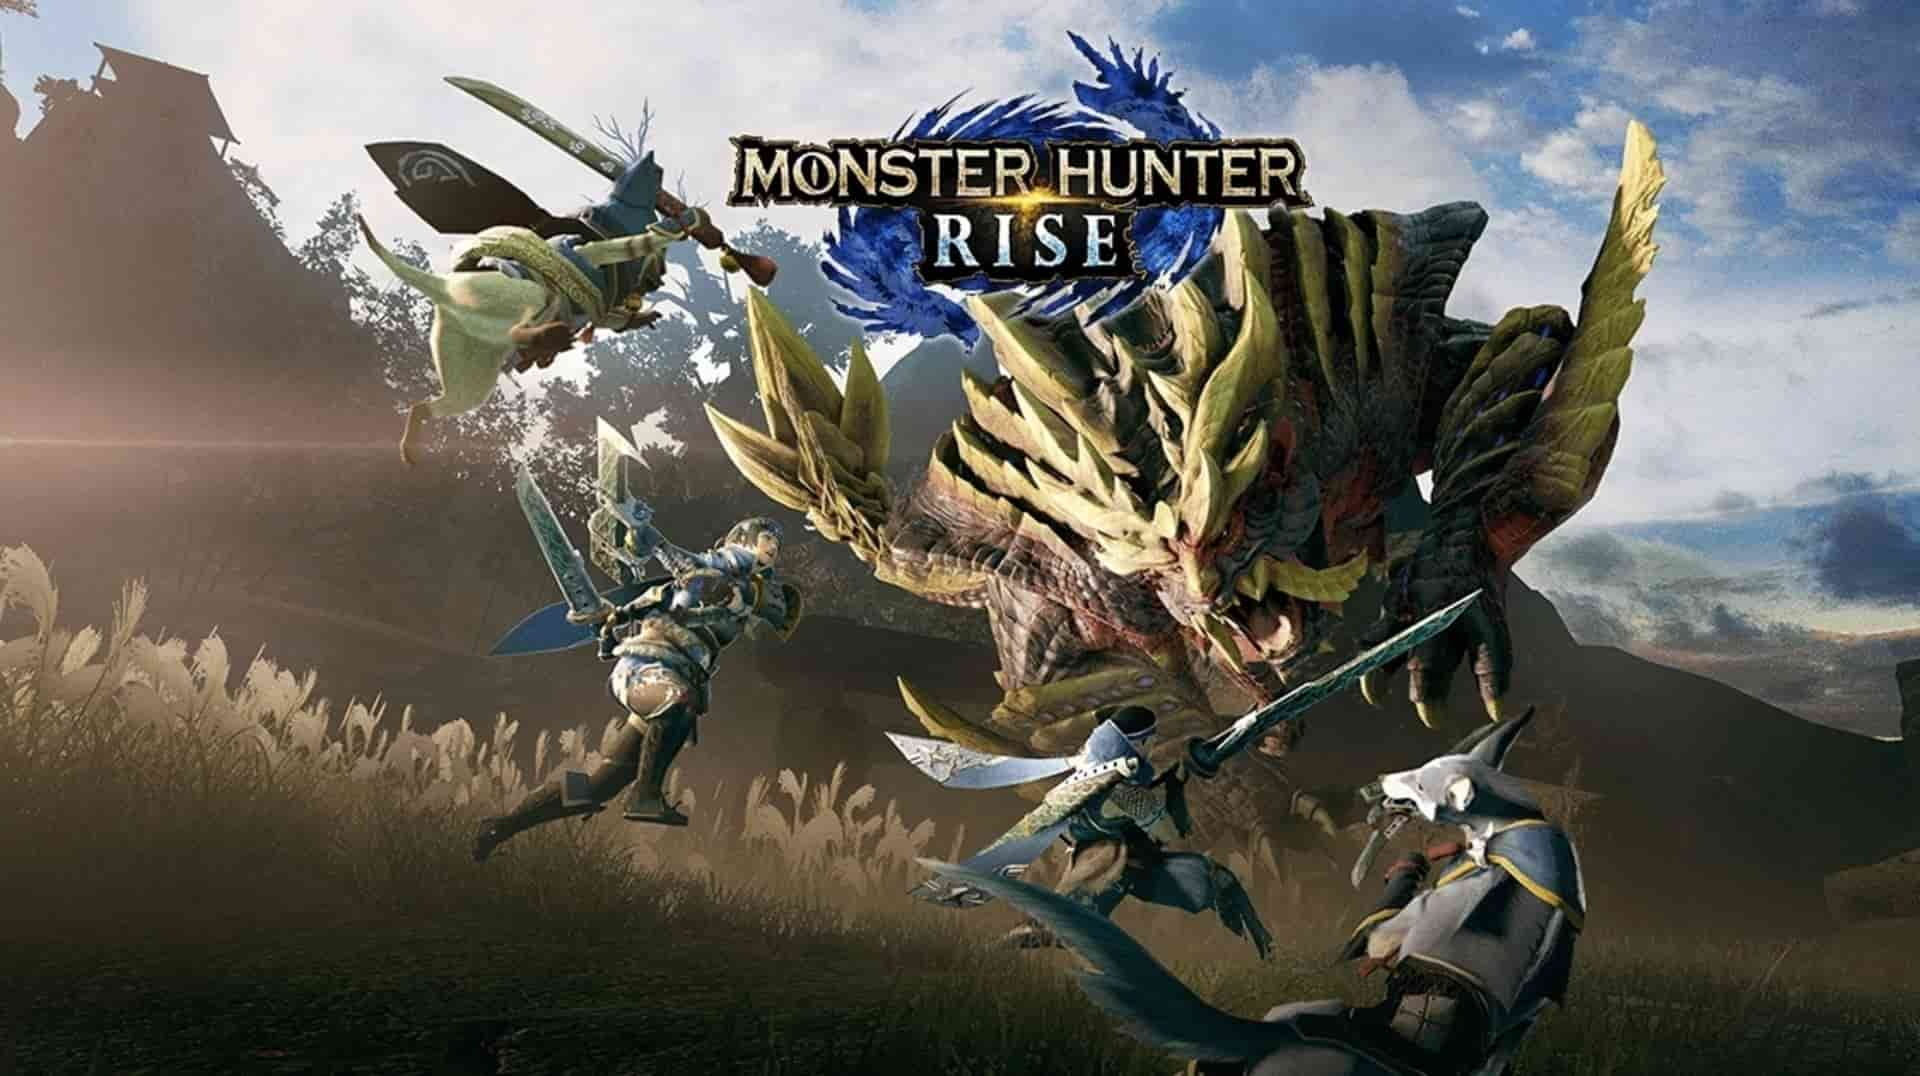 Monster Hunter Rise demo coming later today on Switch